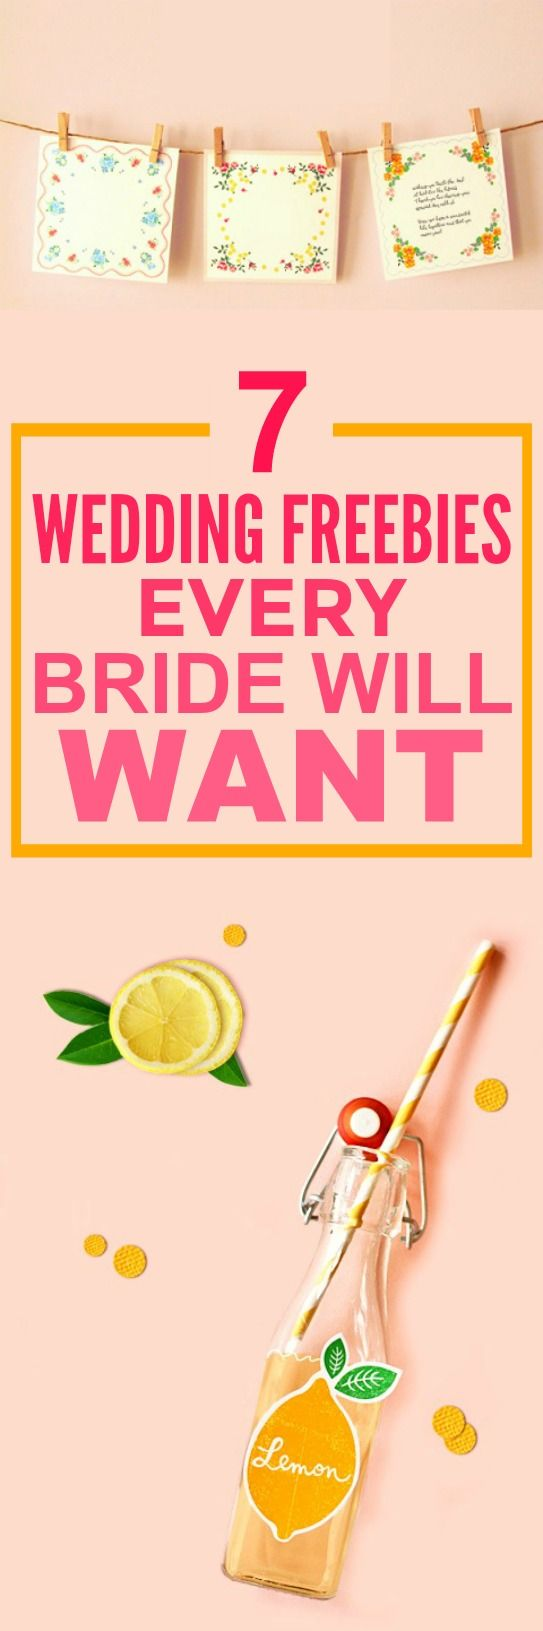 7 Wedding Freebie Hacks from the Experts | Wedding - Tips! Tricks ...